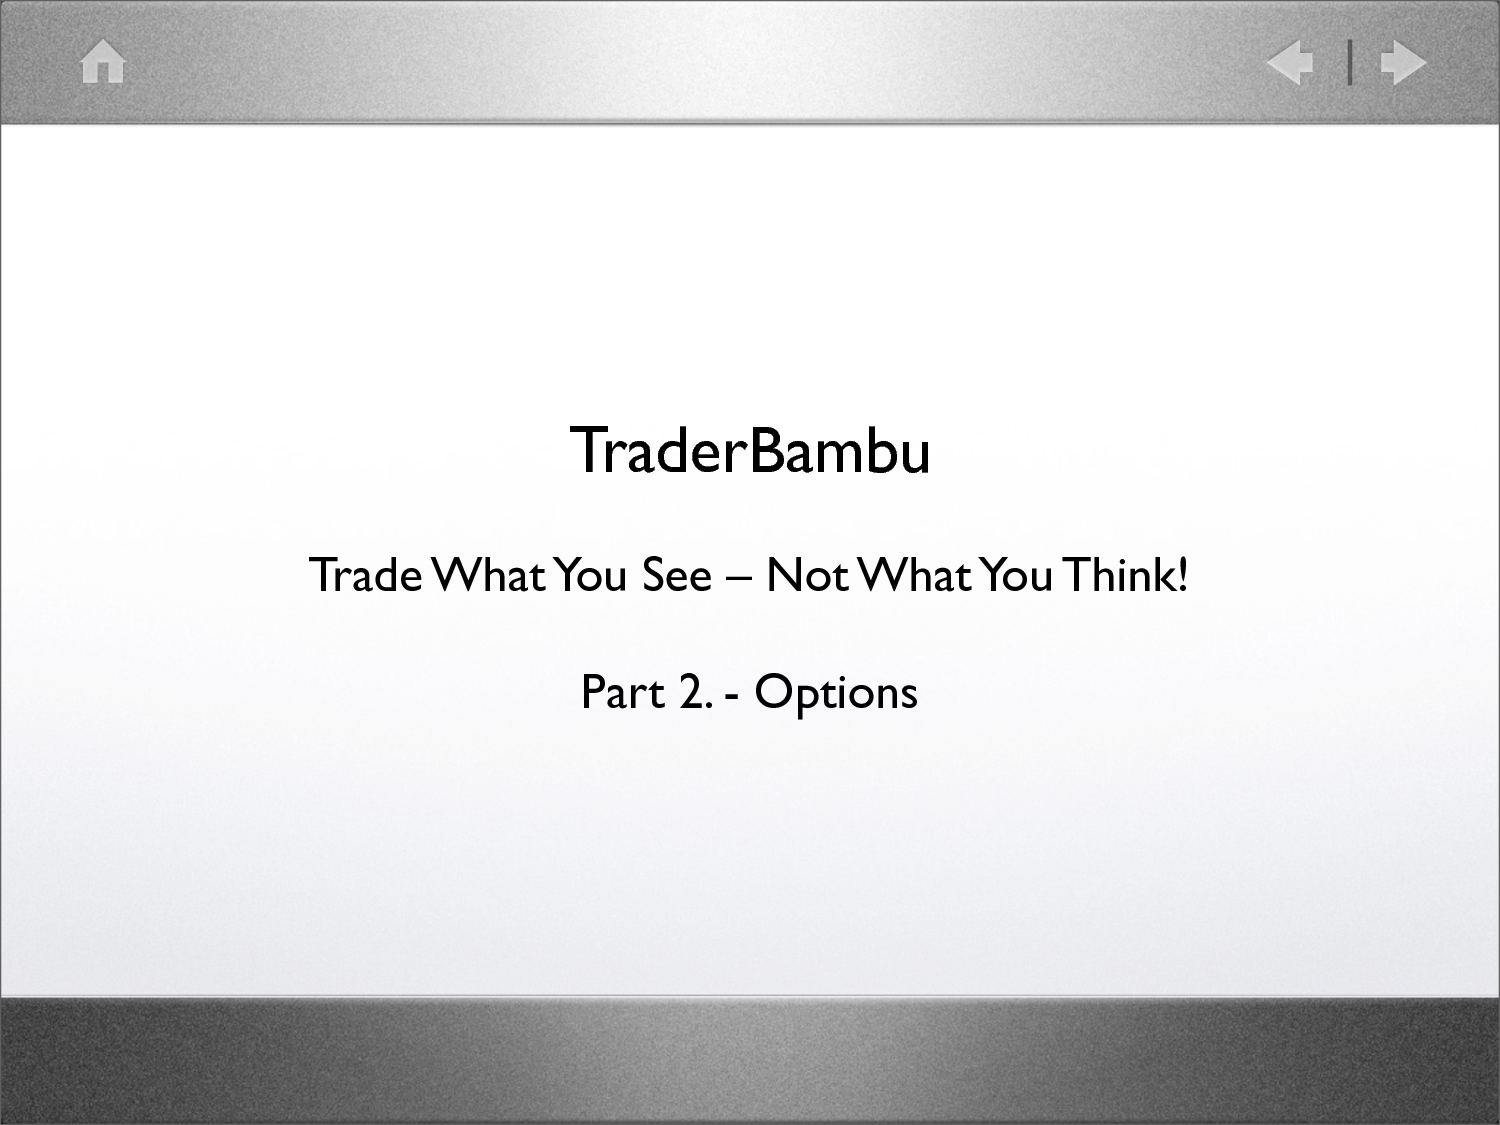 Huntraders | Options / Definition of options